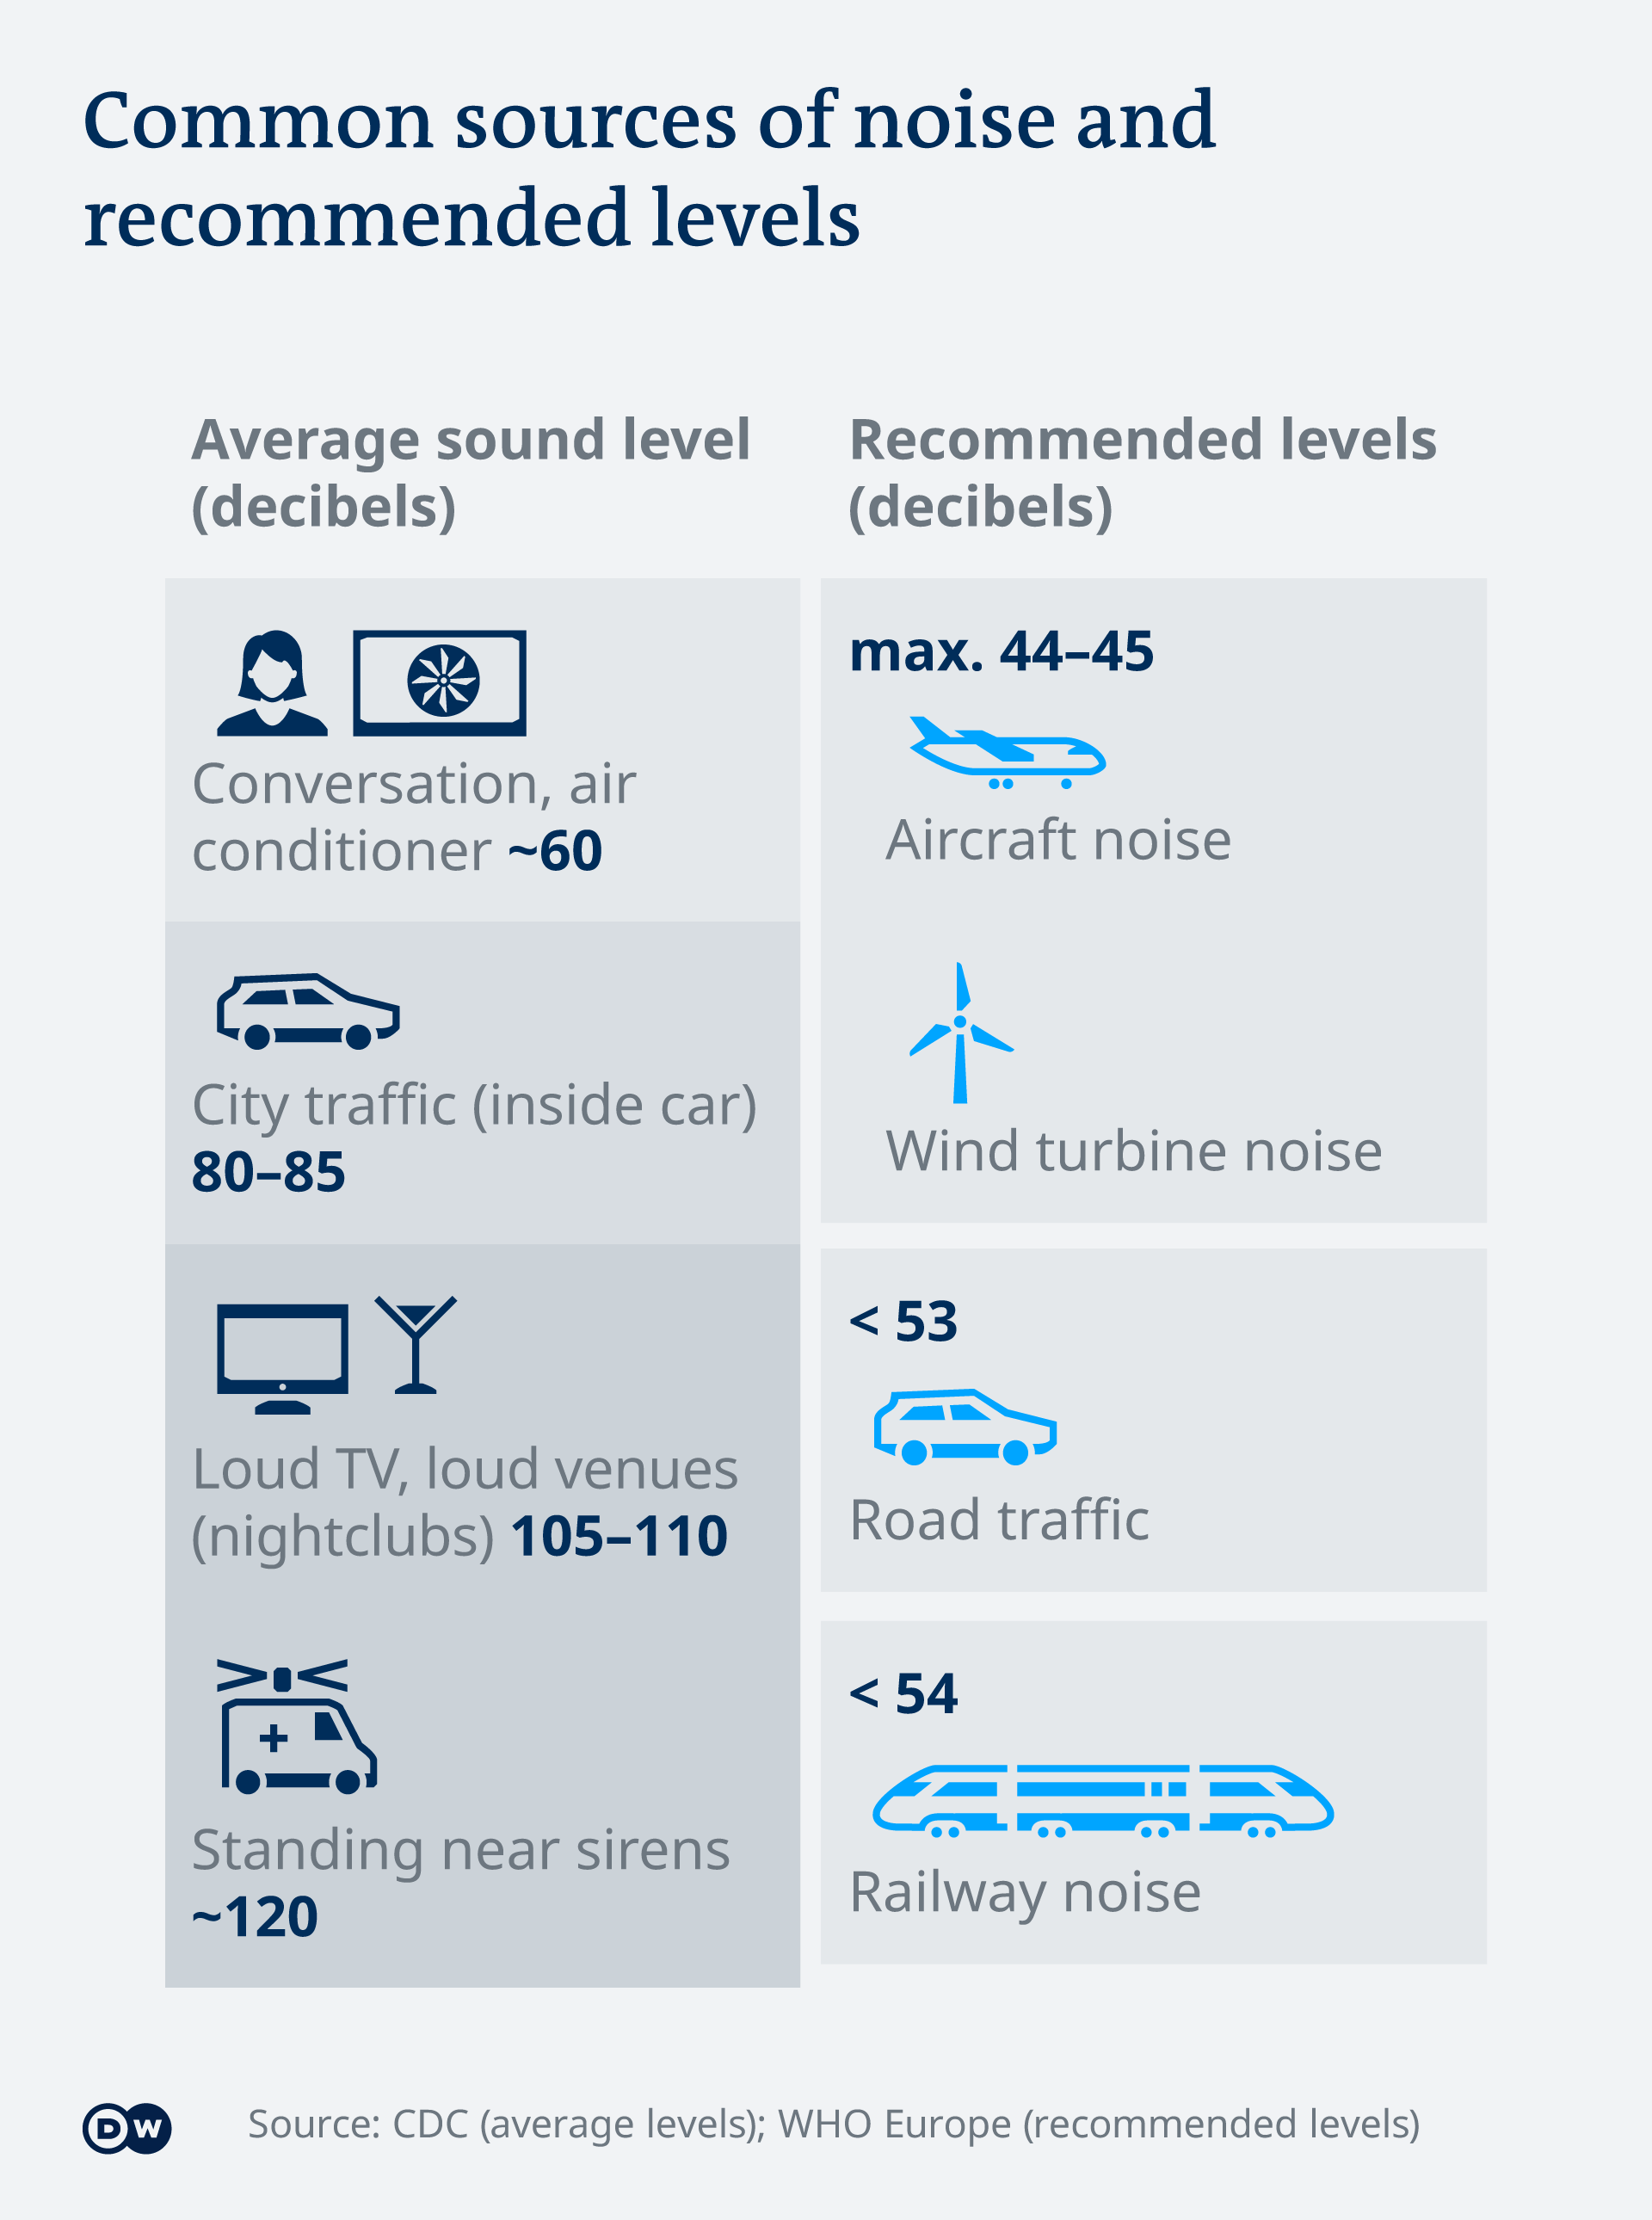 Recommended noise levels